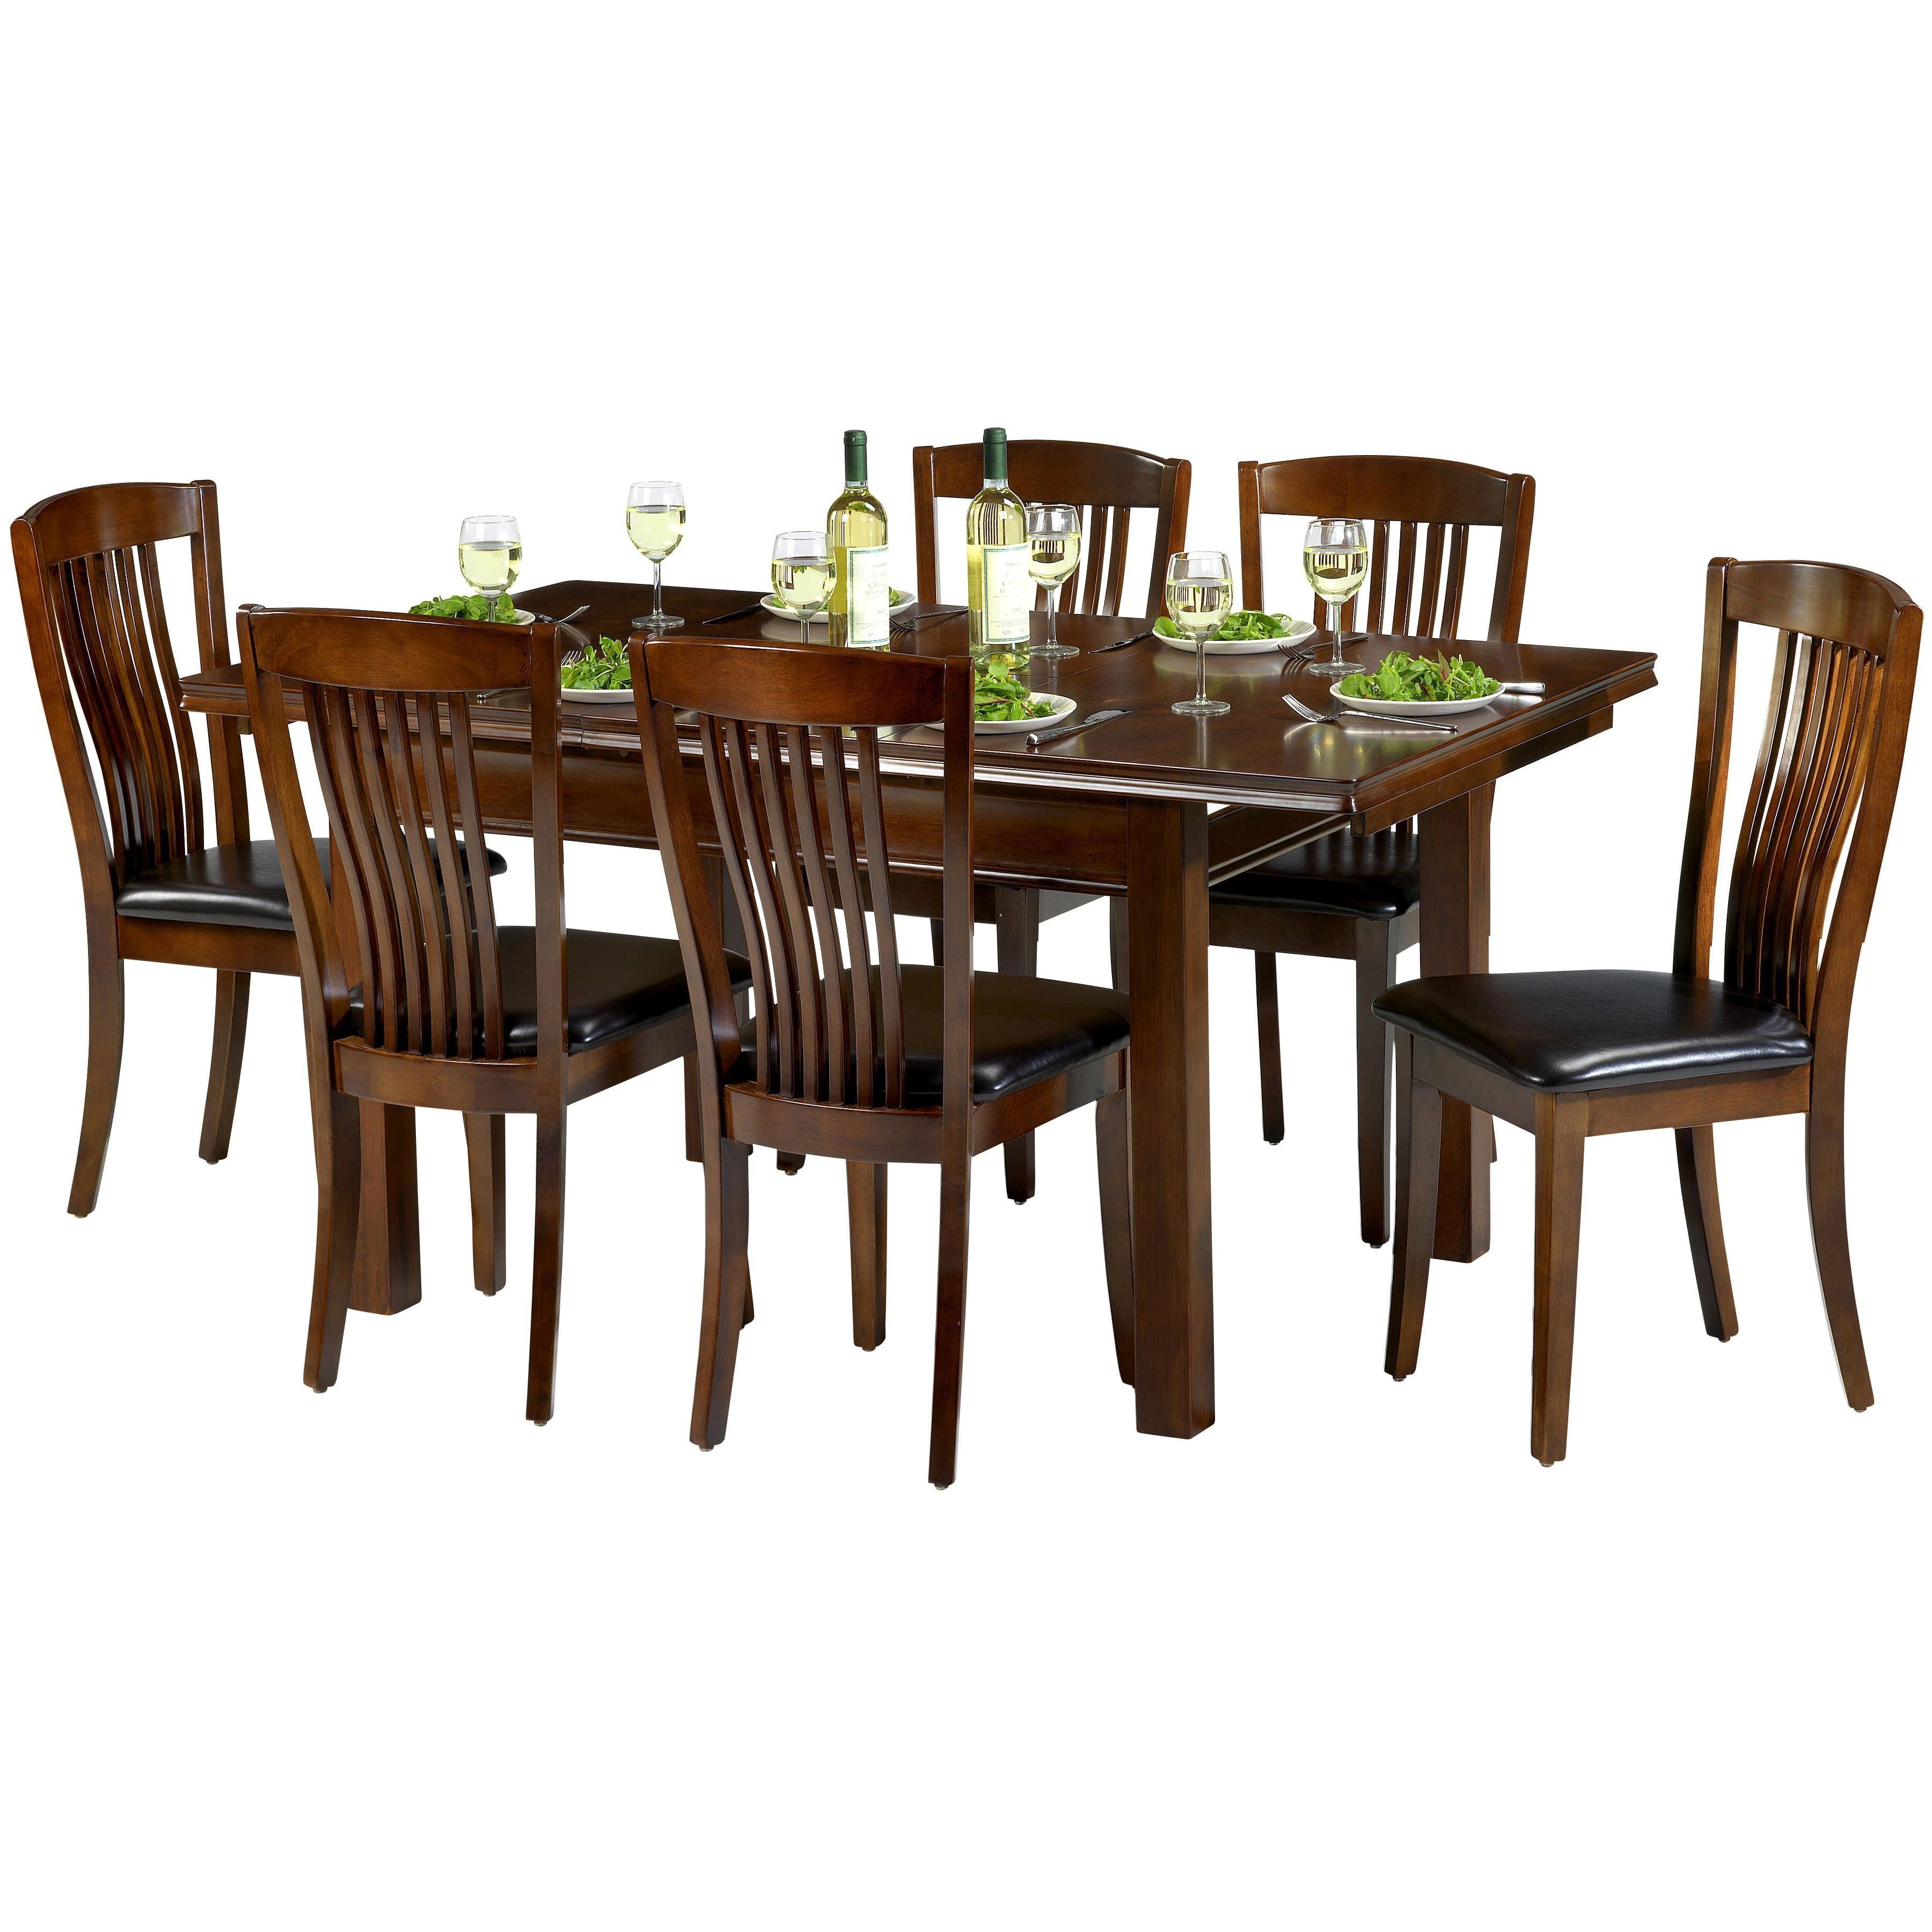 Extendable Dining Tables And 6 Chairs Intended For Most Up To Date Mahogany Finish Extending Extendable Dining Table And Chair Set With (View 3 of 25)